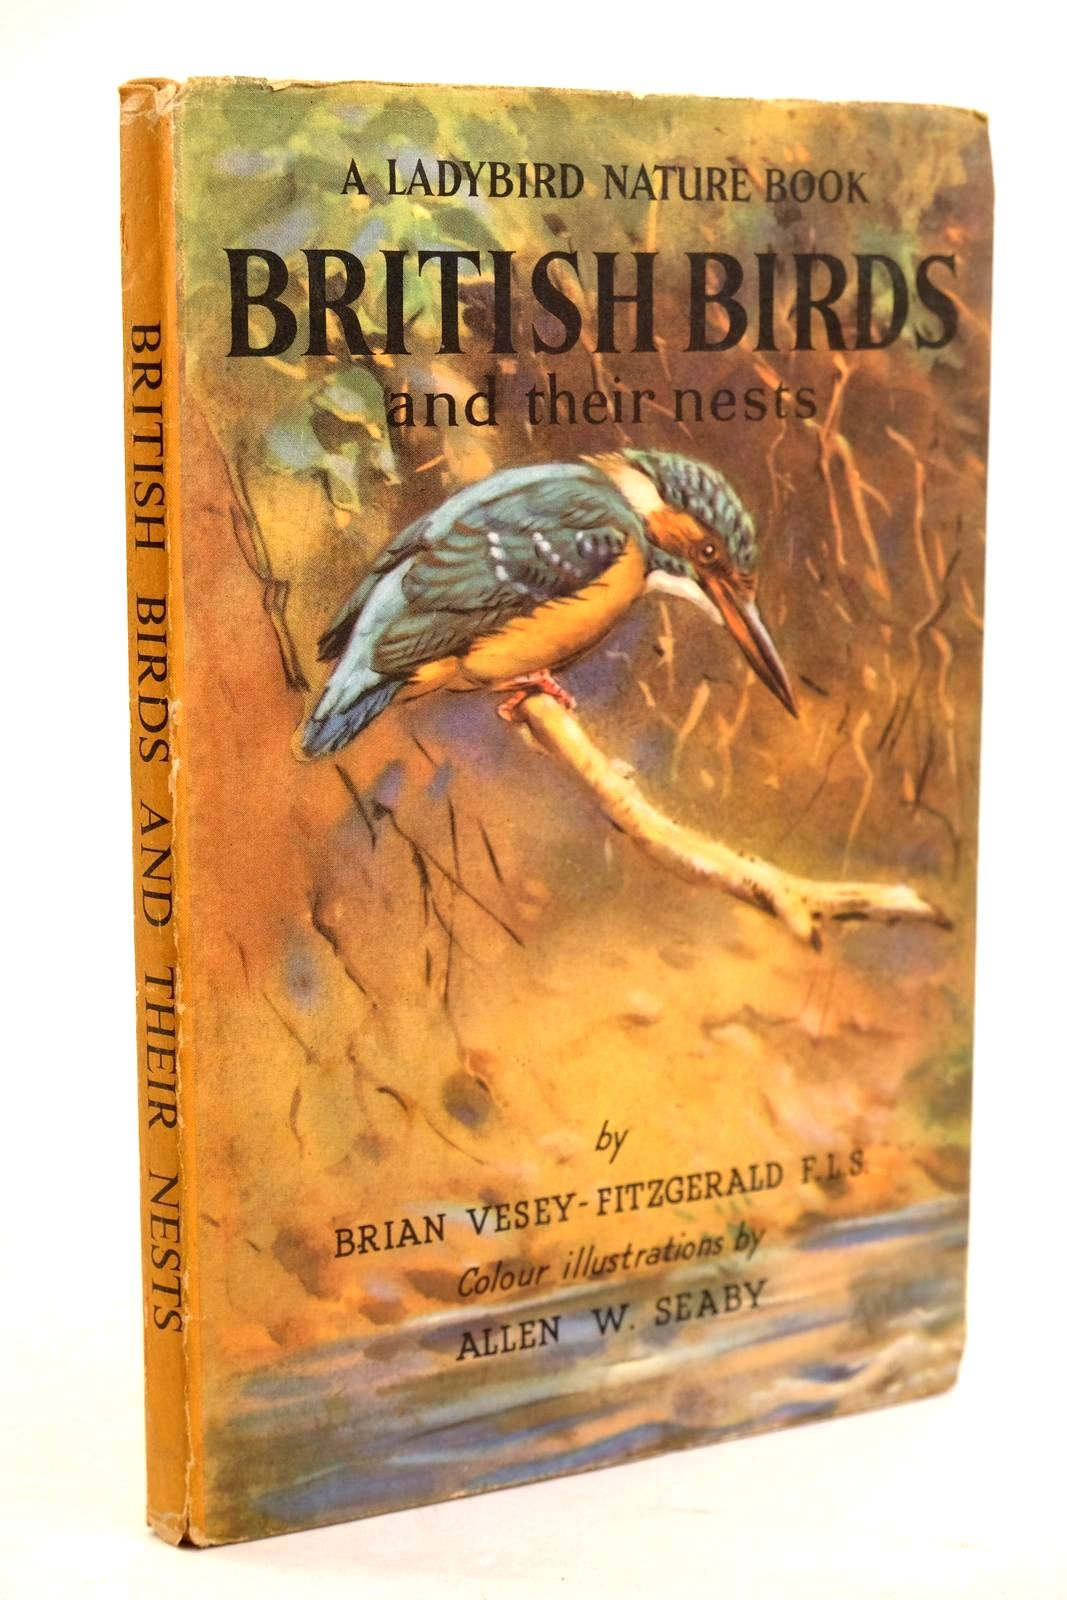 Photo of BRITISH BIRDS AND THEIR NESTS written by Vesey-Fitzgerald, Brian illustrated by Seaby, Allen W. published by Wills & Hepworth Ltd. (STOCK CODE: 1320632)  for sale by Stella & Rose's Books